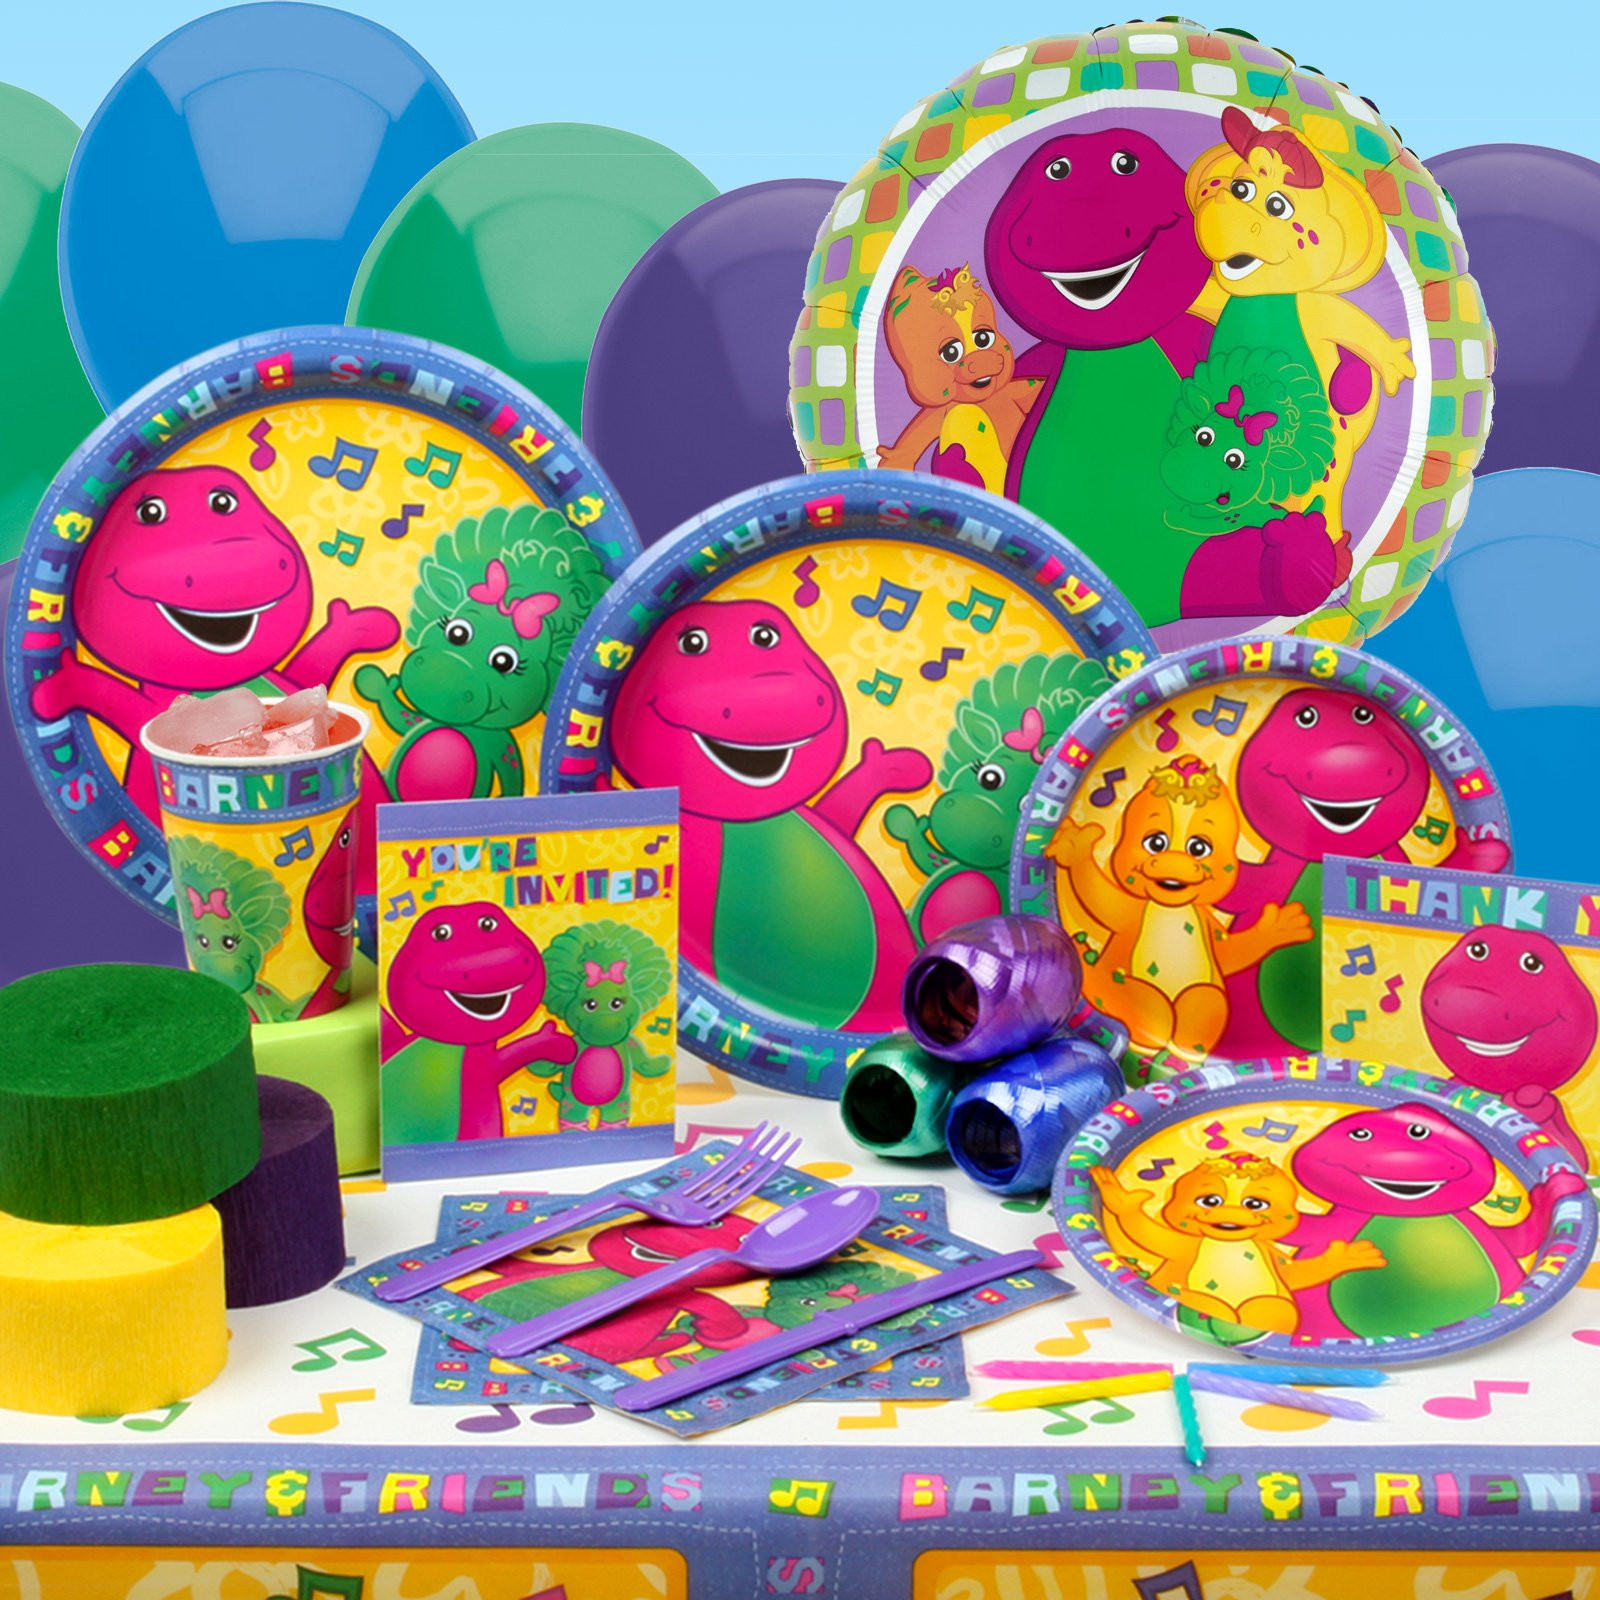 Barney Birthday Party Decorations  FavorCakes by Erica Where the Hell is Barney